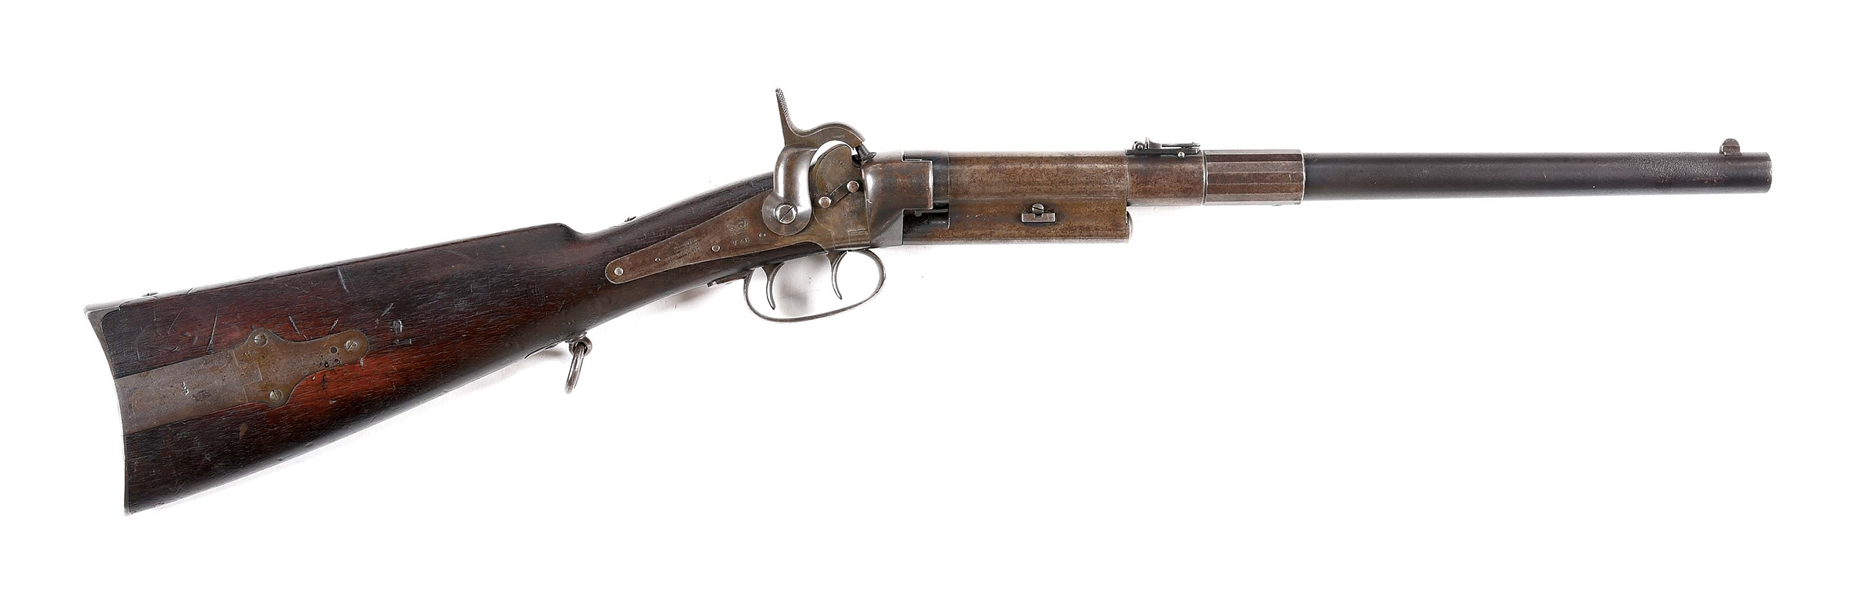 (A) MASSACHUSETTS ARMS CO. GREENE CARBINE PERCUSSION RIFLE.